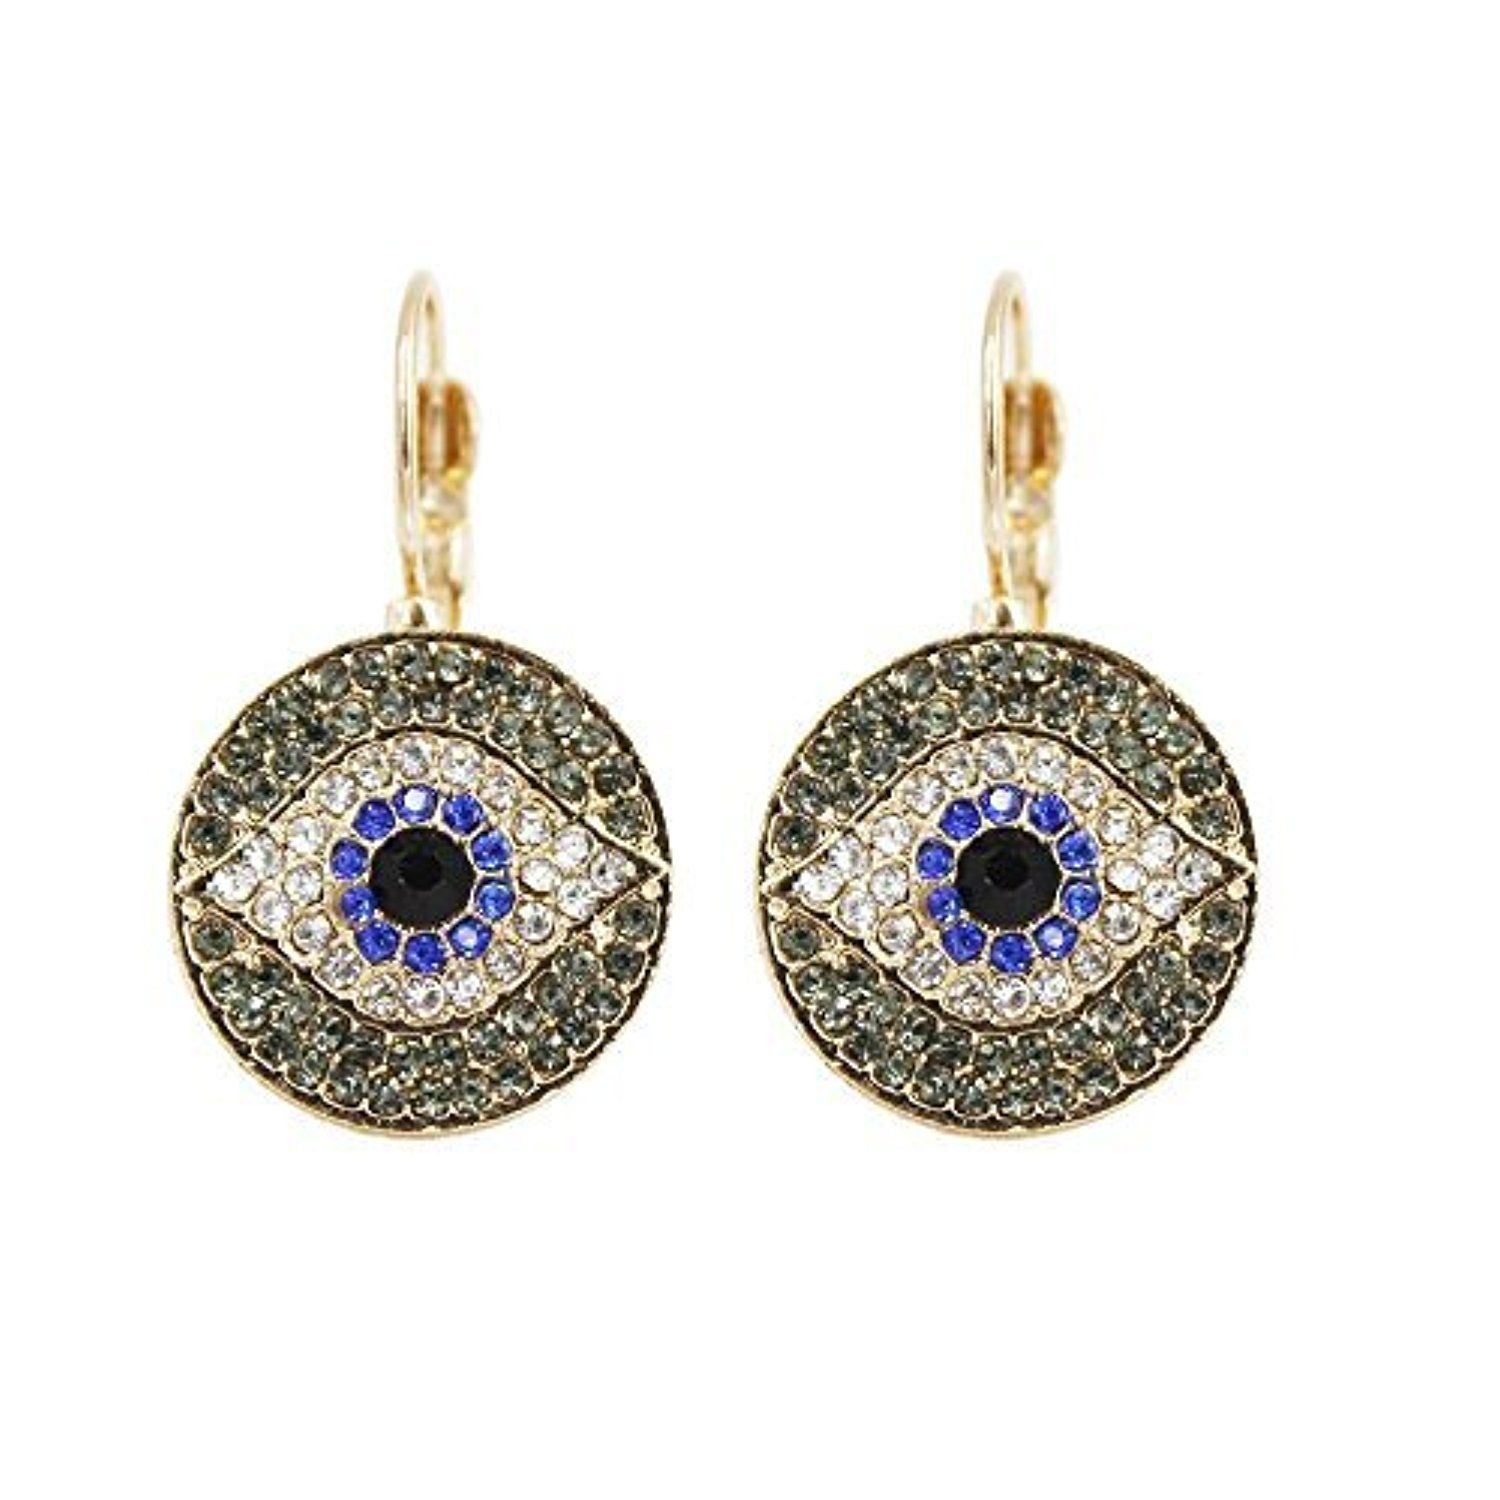 Darkey Wang Fashion Women's Unique Turkish Evil Eye Blue Eyes Earrings Bring You Good Luck by Darkey Wang -- Awesome products selected by Anna Churchill